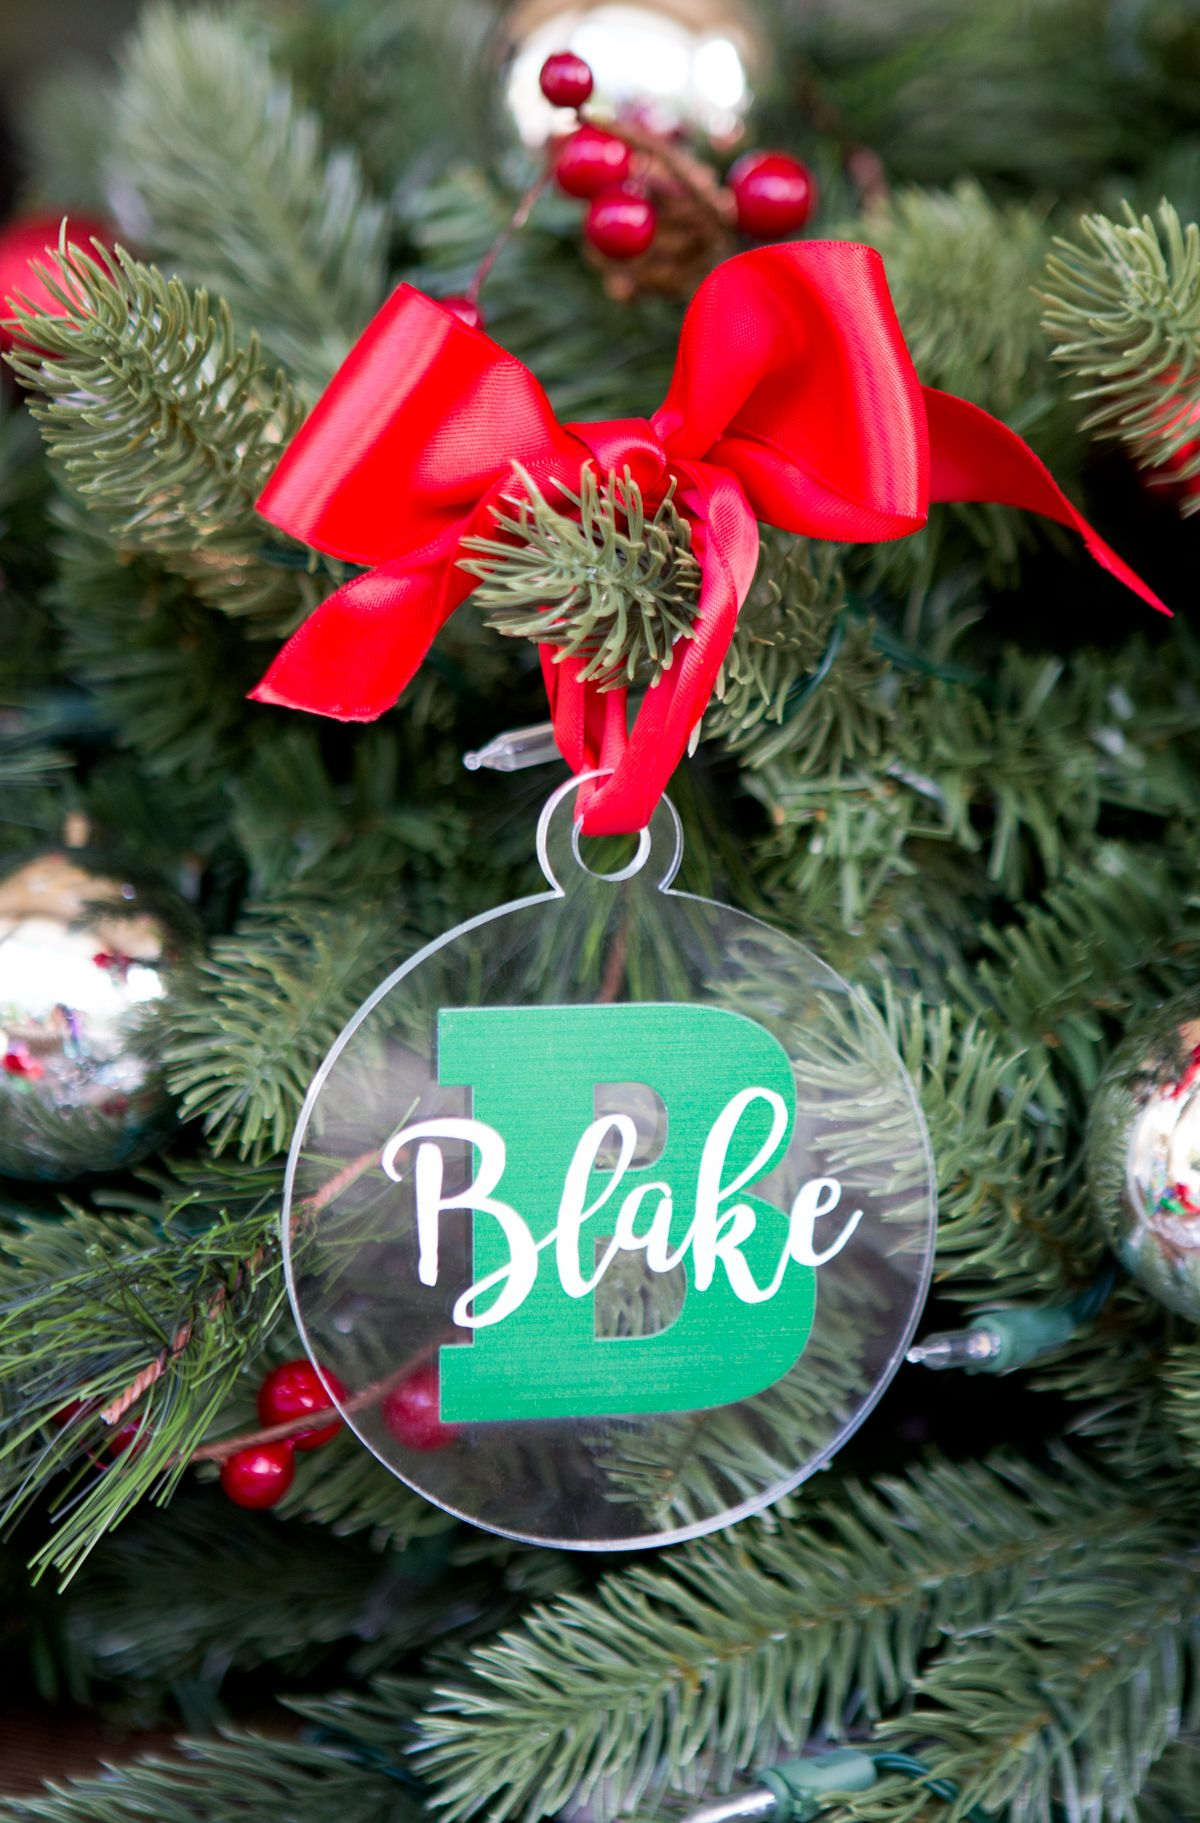 Christmas Ornament Personalized Name And Letter Clear Acrylic Etsy In 2020 Christmas Ornaments Personalized Christmas Ornaments Name Christmas Ornaments